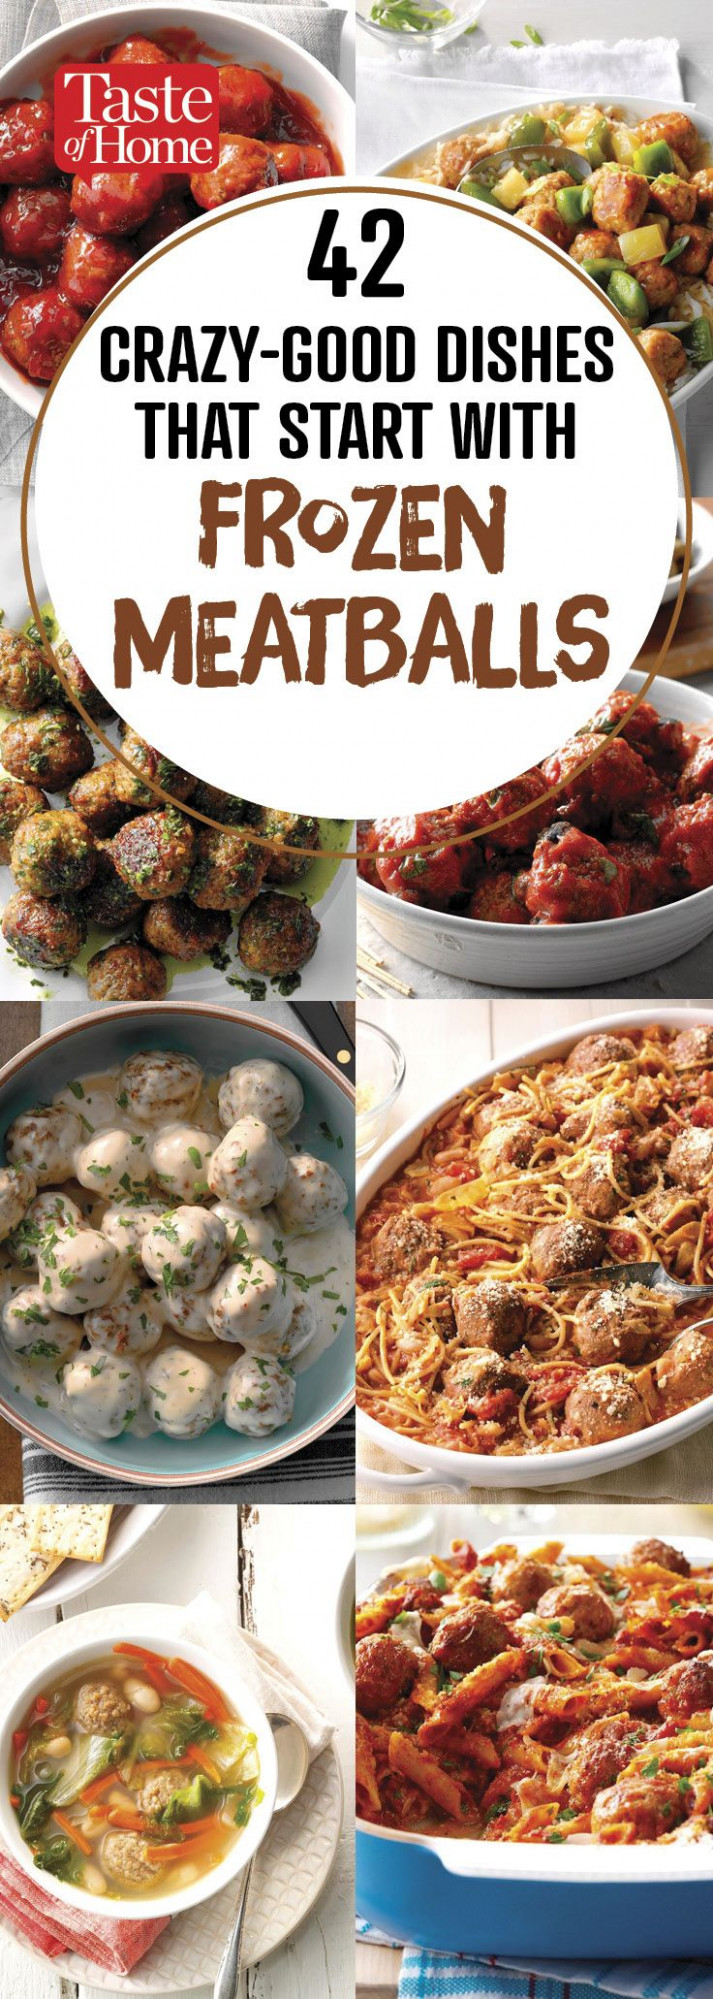 dinner-recipes-with-frozen-meatballs